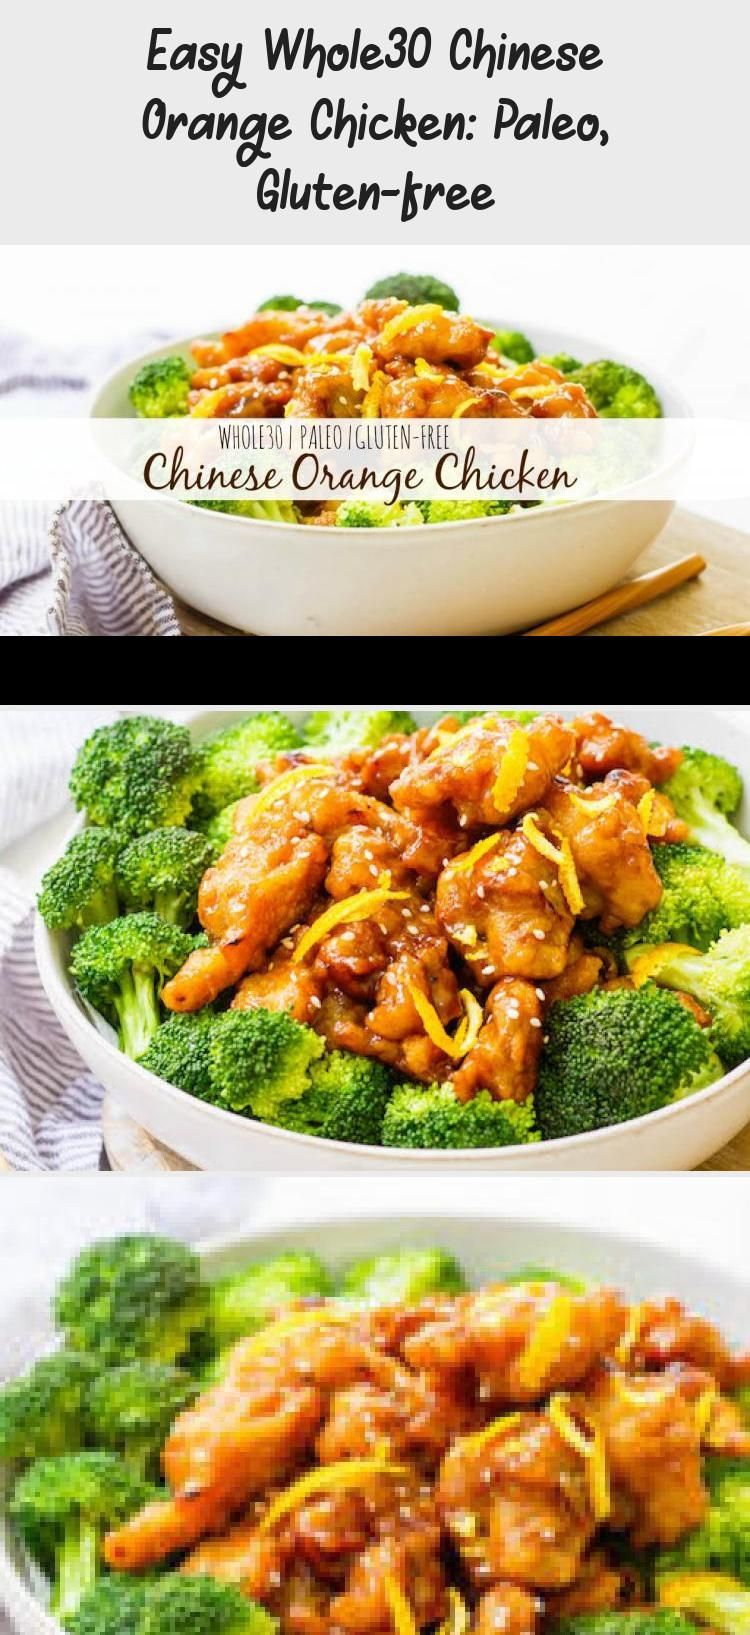 Easy Whole30 Chinese Orange Chicken: Paleo, Gluten-free #chineseorangechicken This easy Whole30 Chinese orange chicken is the best takeout fake-out ever. Sometimes you just need some orange chicken in your life, and this version is much healthier and there's no delivery fee! It's also a Paleo orange chicken recipe, which makes it gluten free and made from real ingredients, so you can skip the MSG! #whole30orangechicken #paleoorangechicken #whole30chickenrecipes #Salmonrecipe #Southernrecipe #Ham #chineseorangechicken